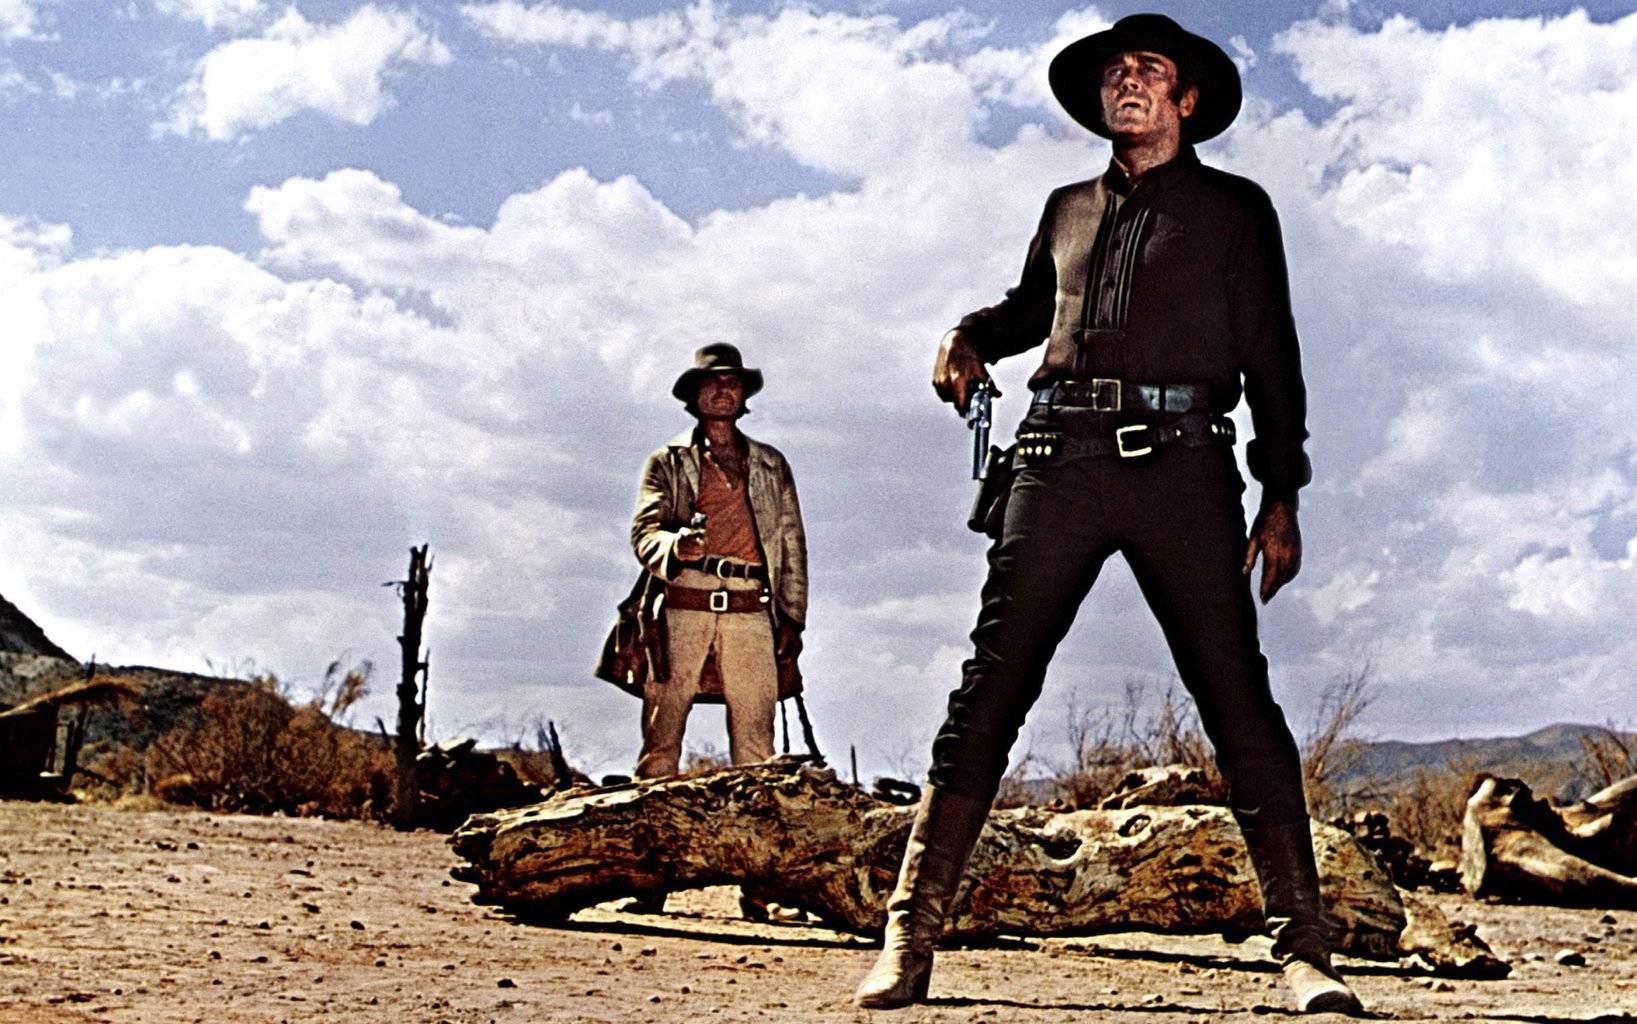 A still from Once Upon a Time in the West (1968) directed by Sergio Leone